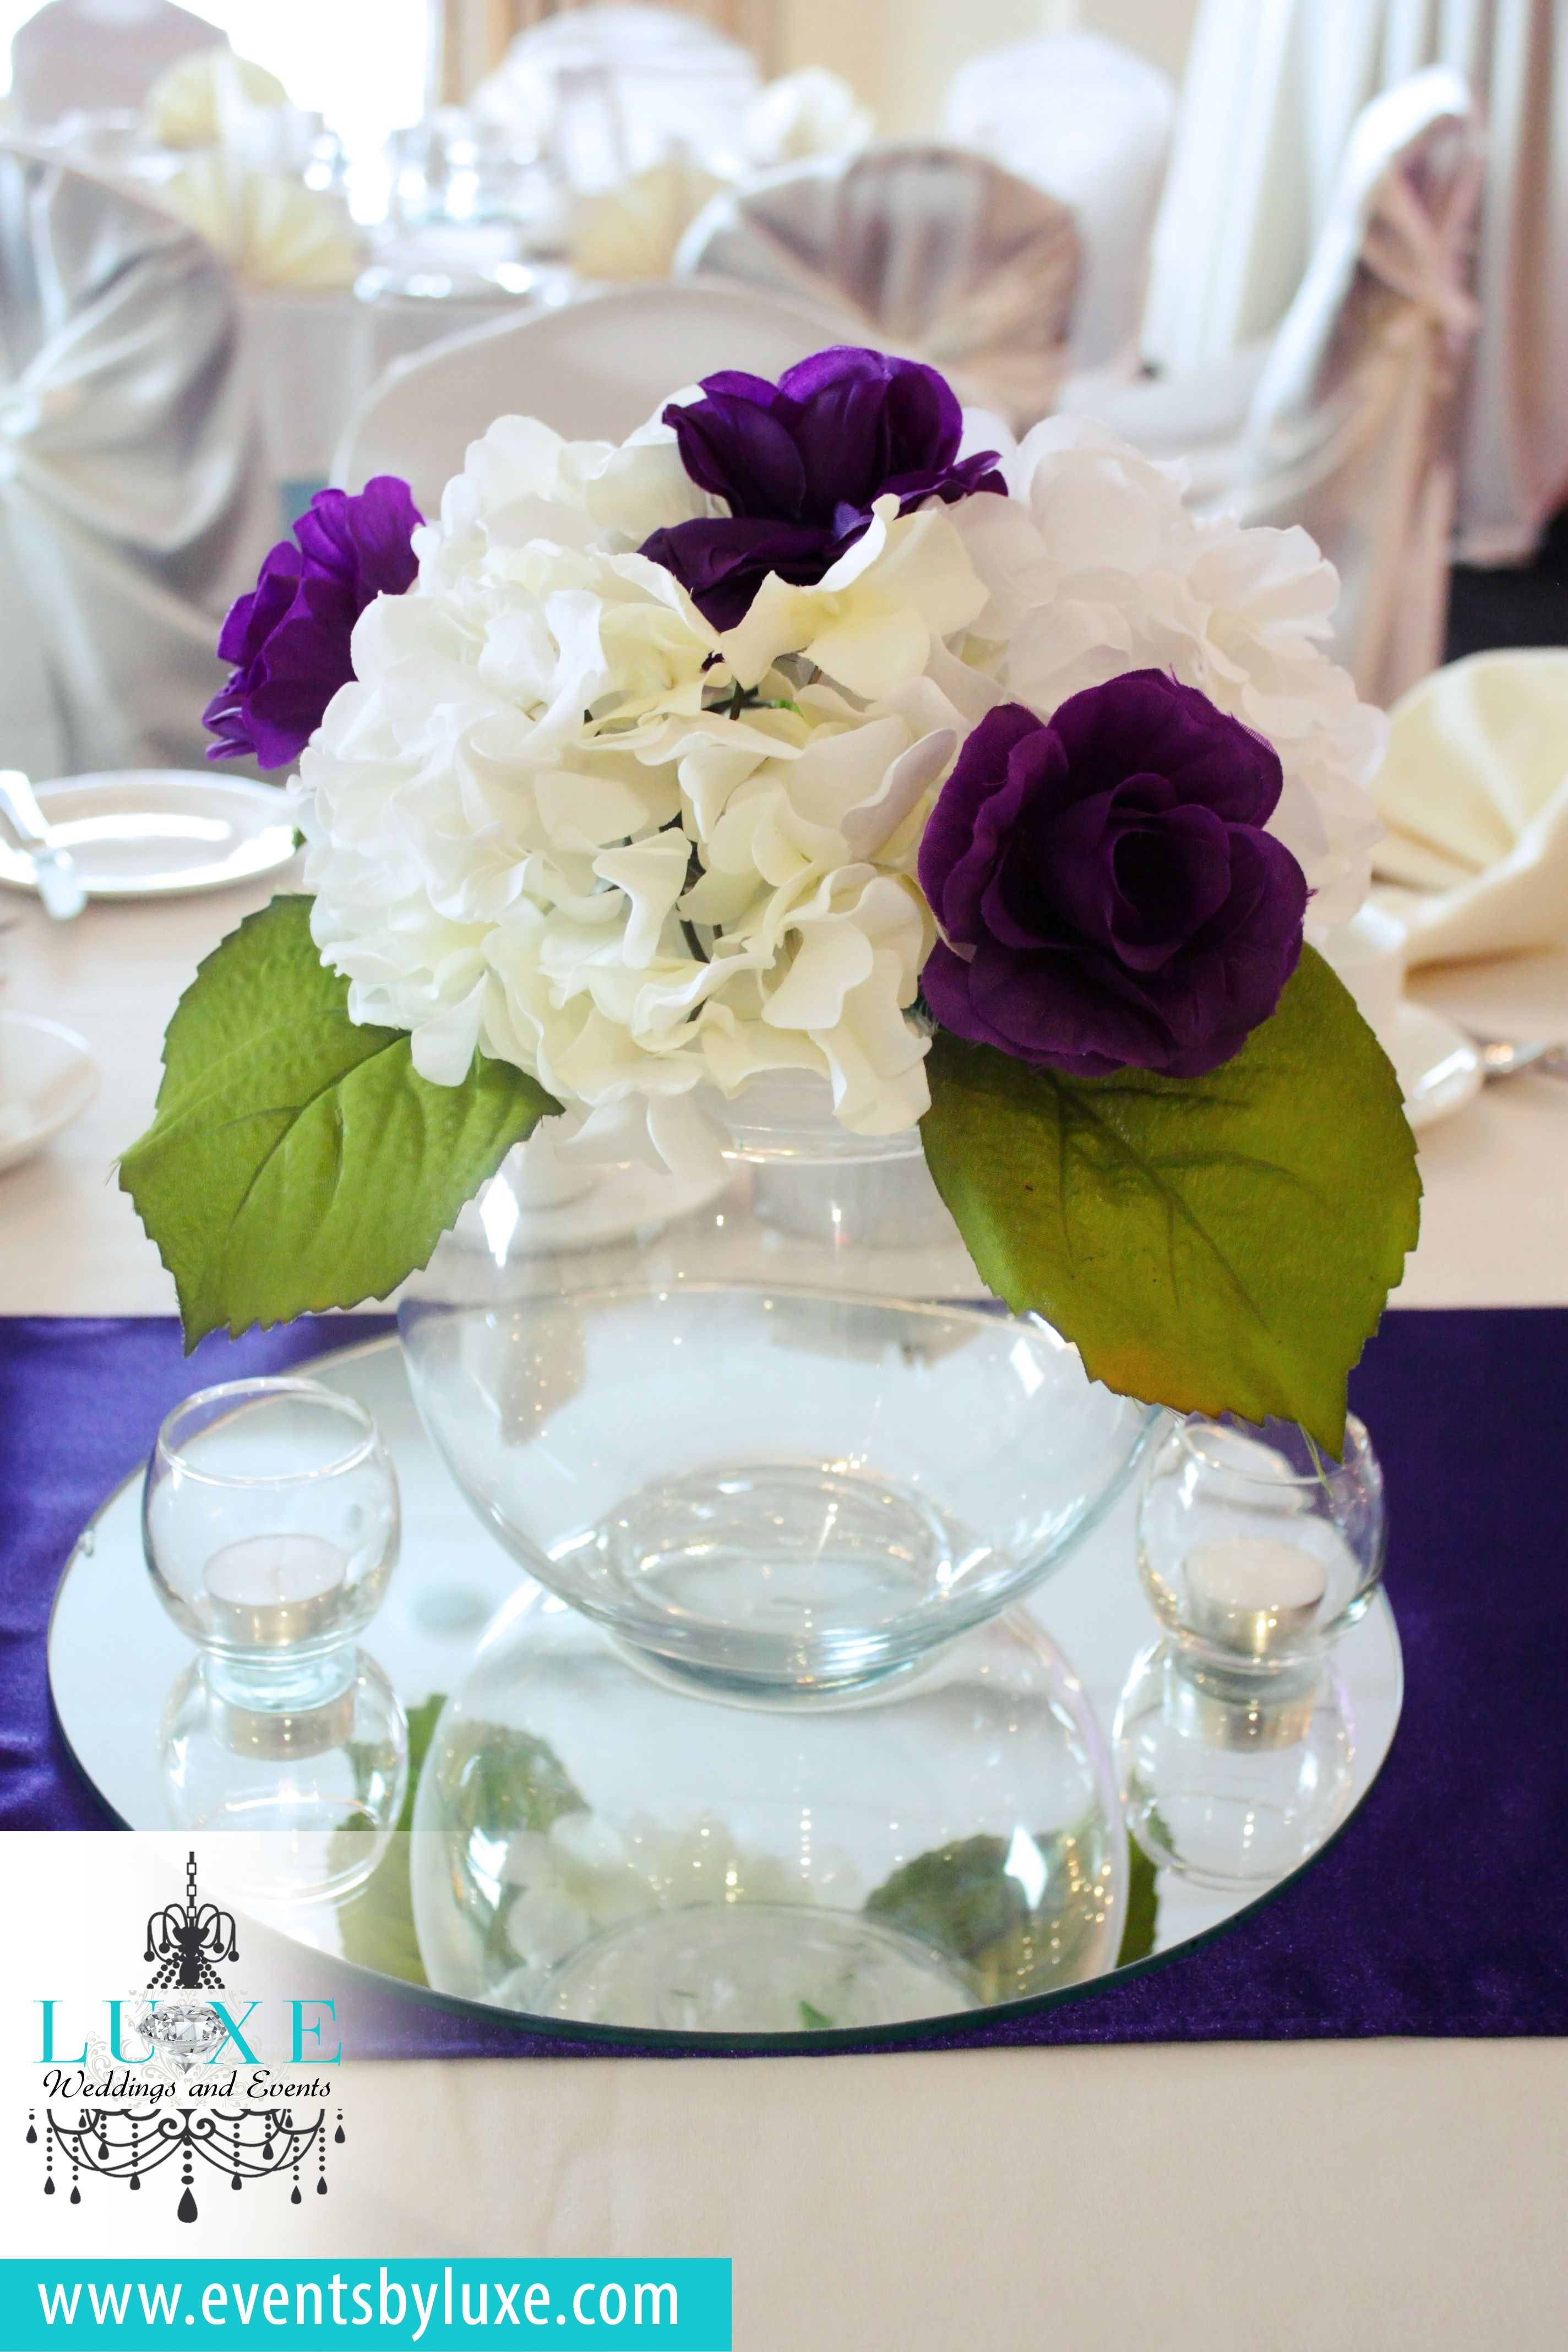 continental post decorations purple decor related of restaurant at search google white and black wedding new seafood best in stanleyampclare blue royal